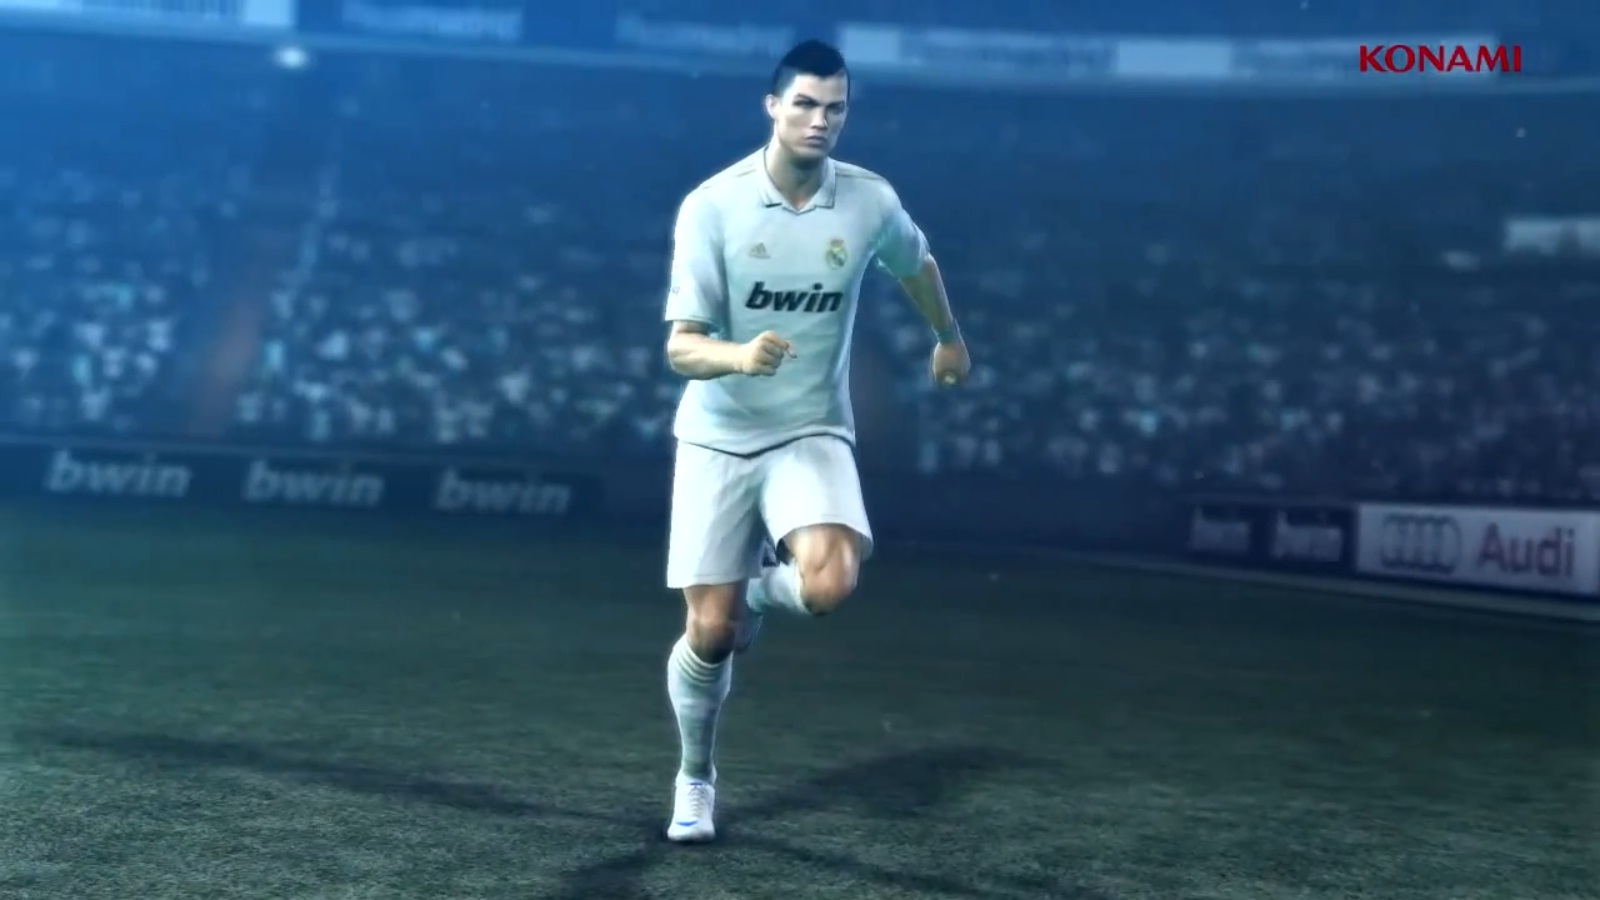 PES 13 ( PC, PS3, PSP, Xbox 360,Wii, 3DS, PS vita, IOS, Android)